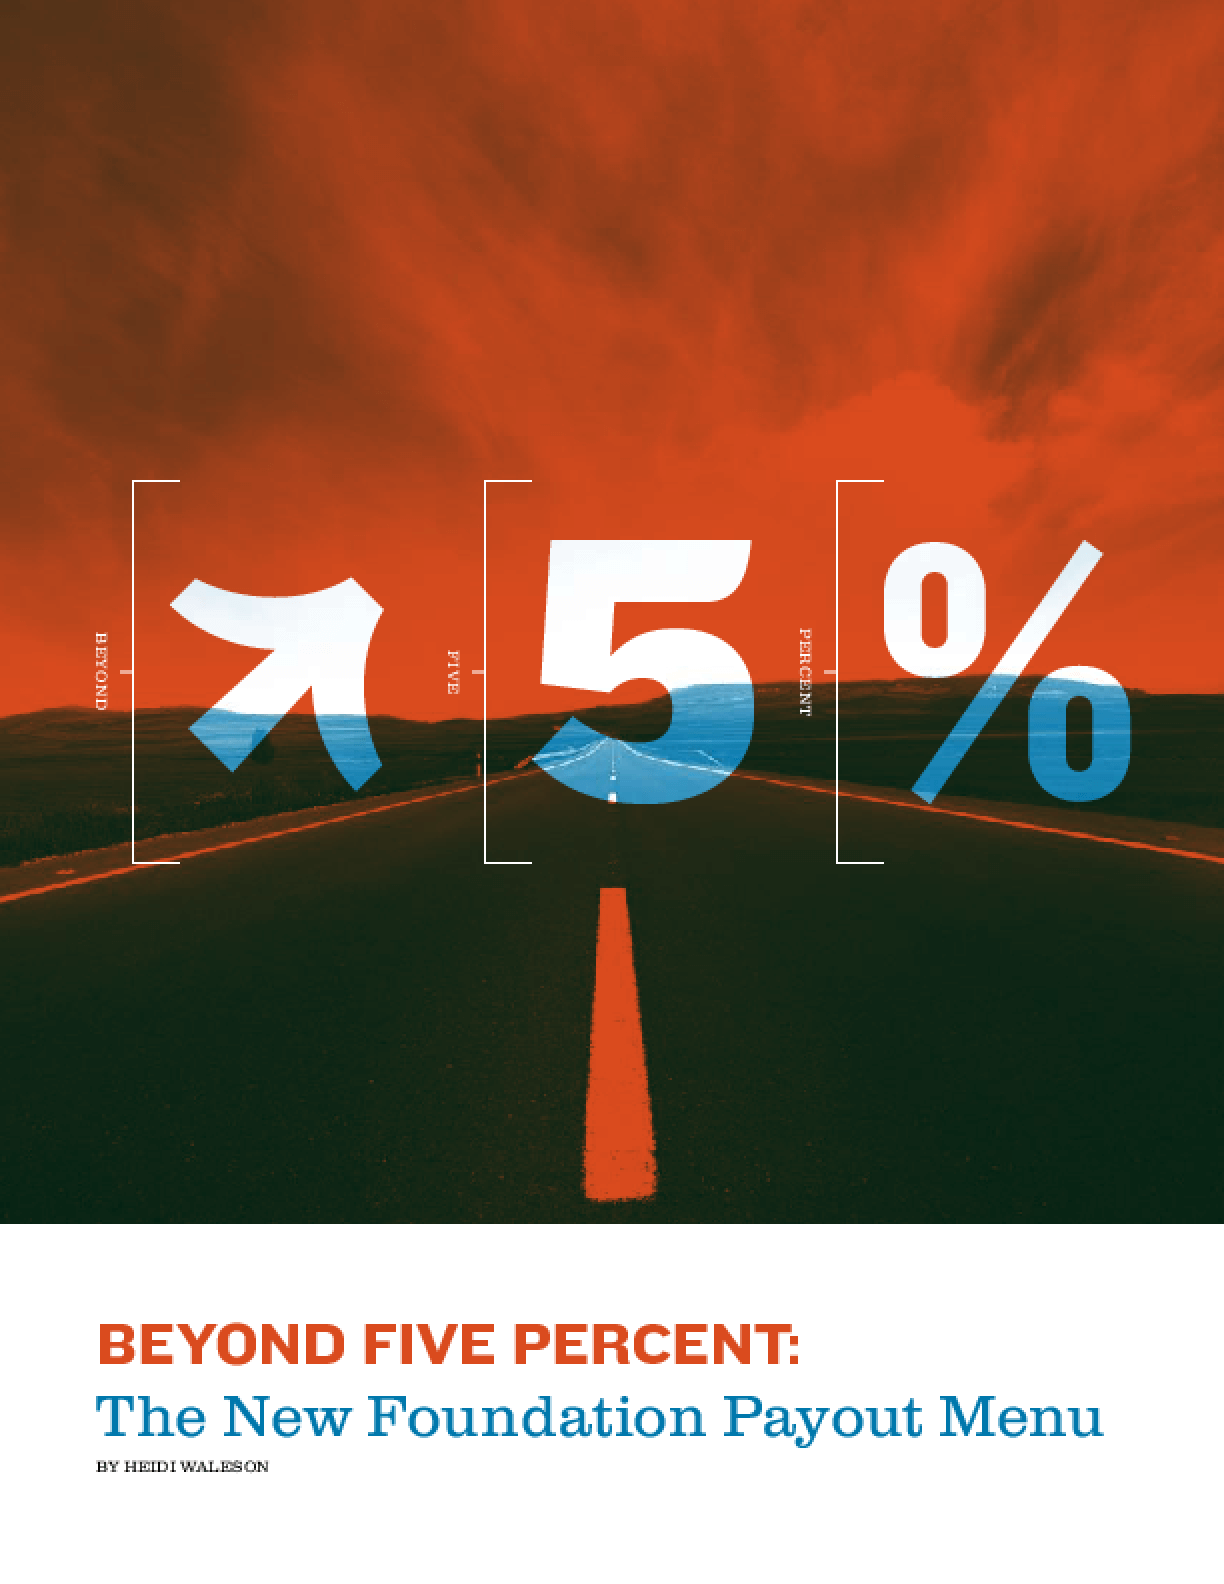 Beyond Five Percent: The New Foundation Payout Menu